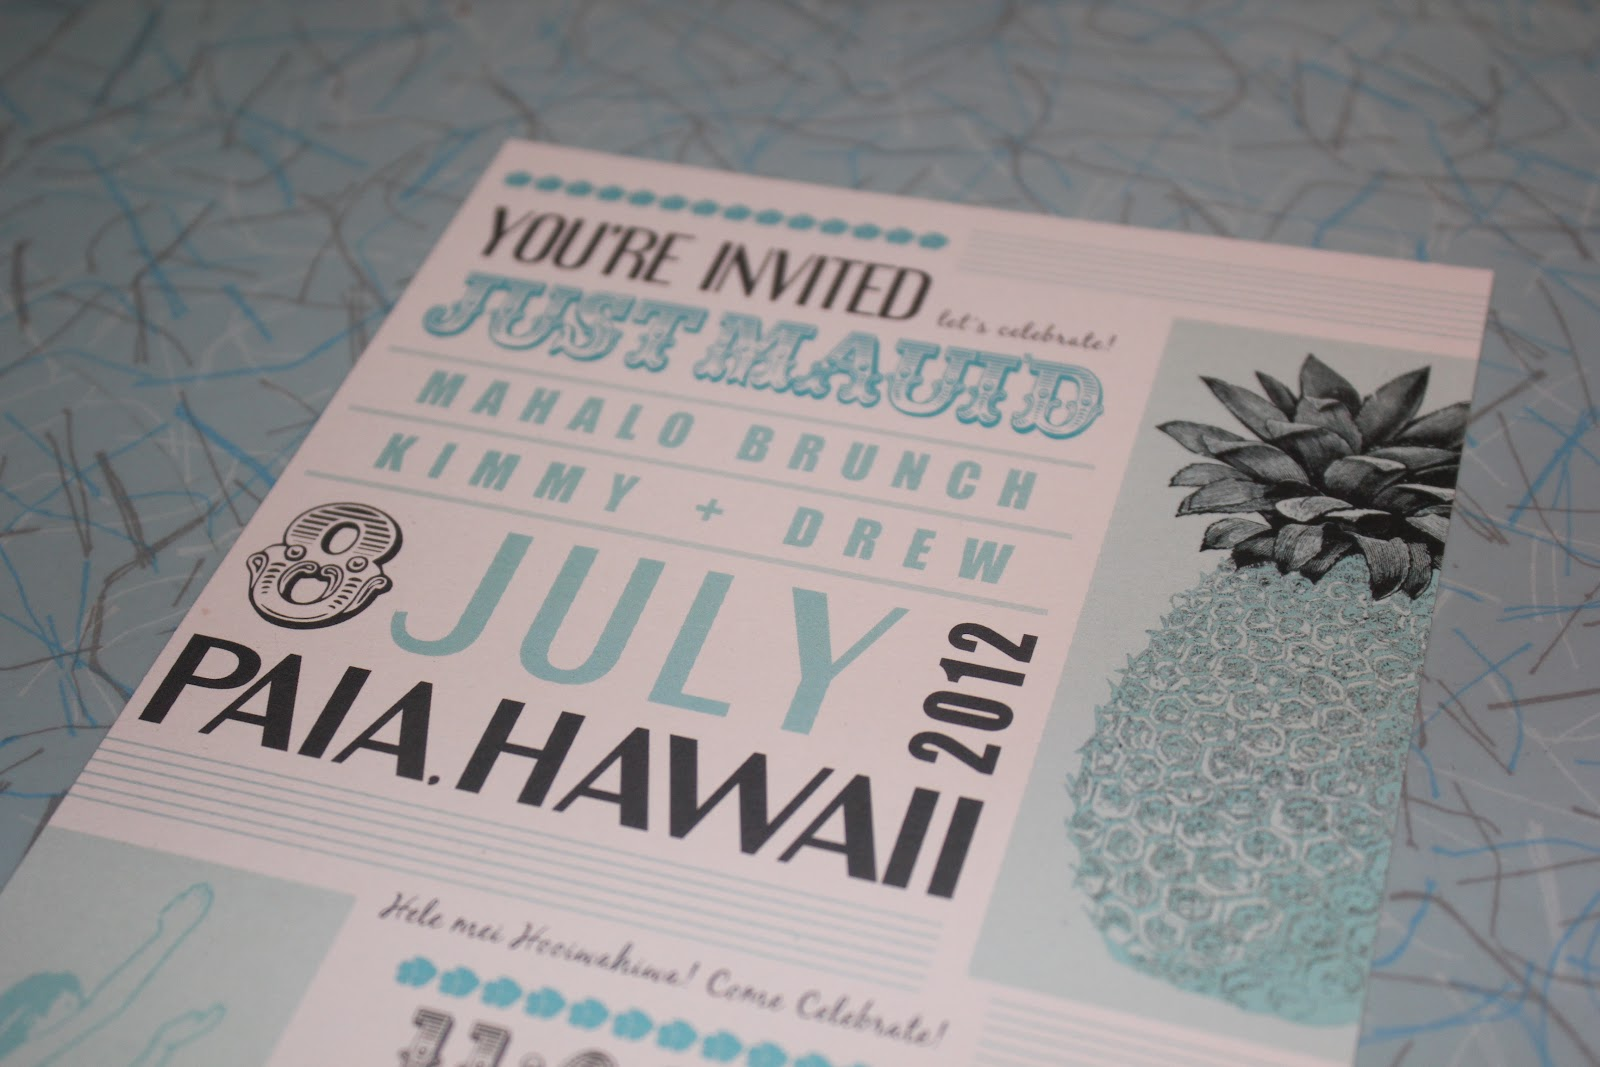 Day After Wedding Brunch Invitation: Tikilife: Reveal: Mahalo Brunch Invitation